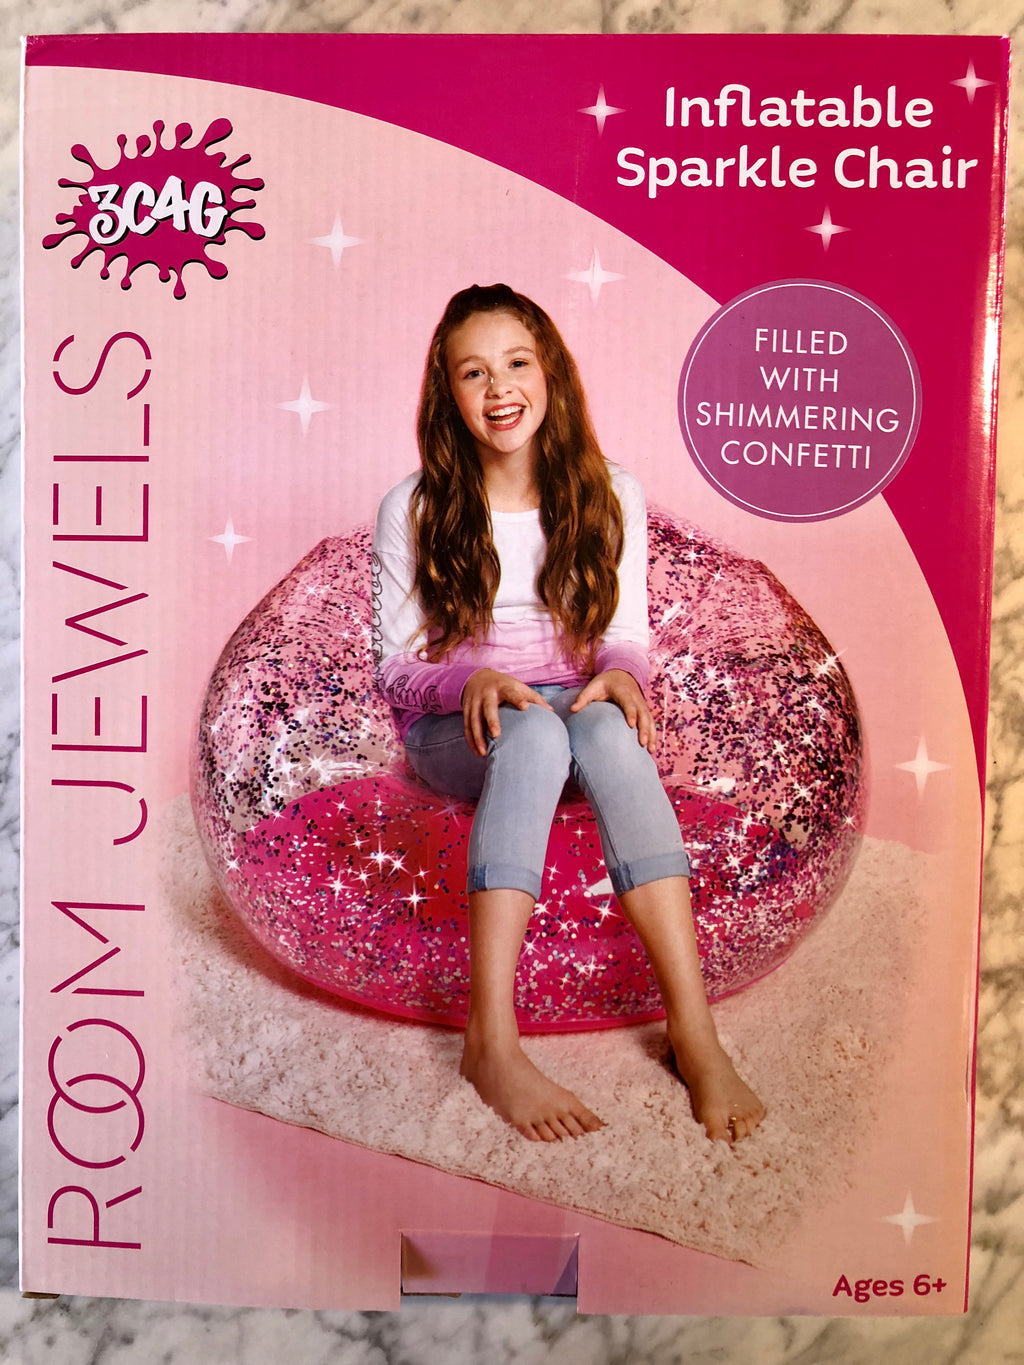 Inflatable Sparkle Chair